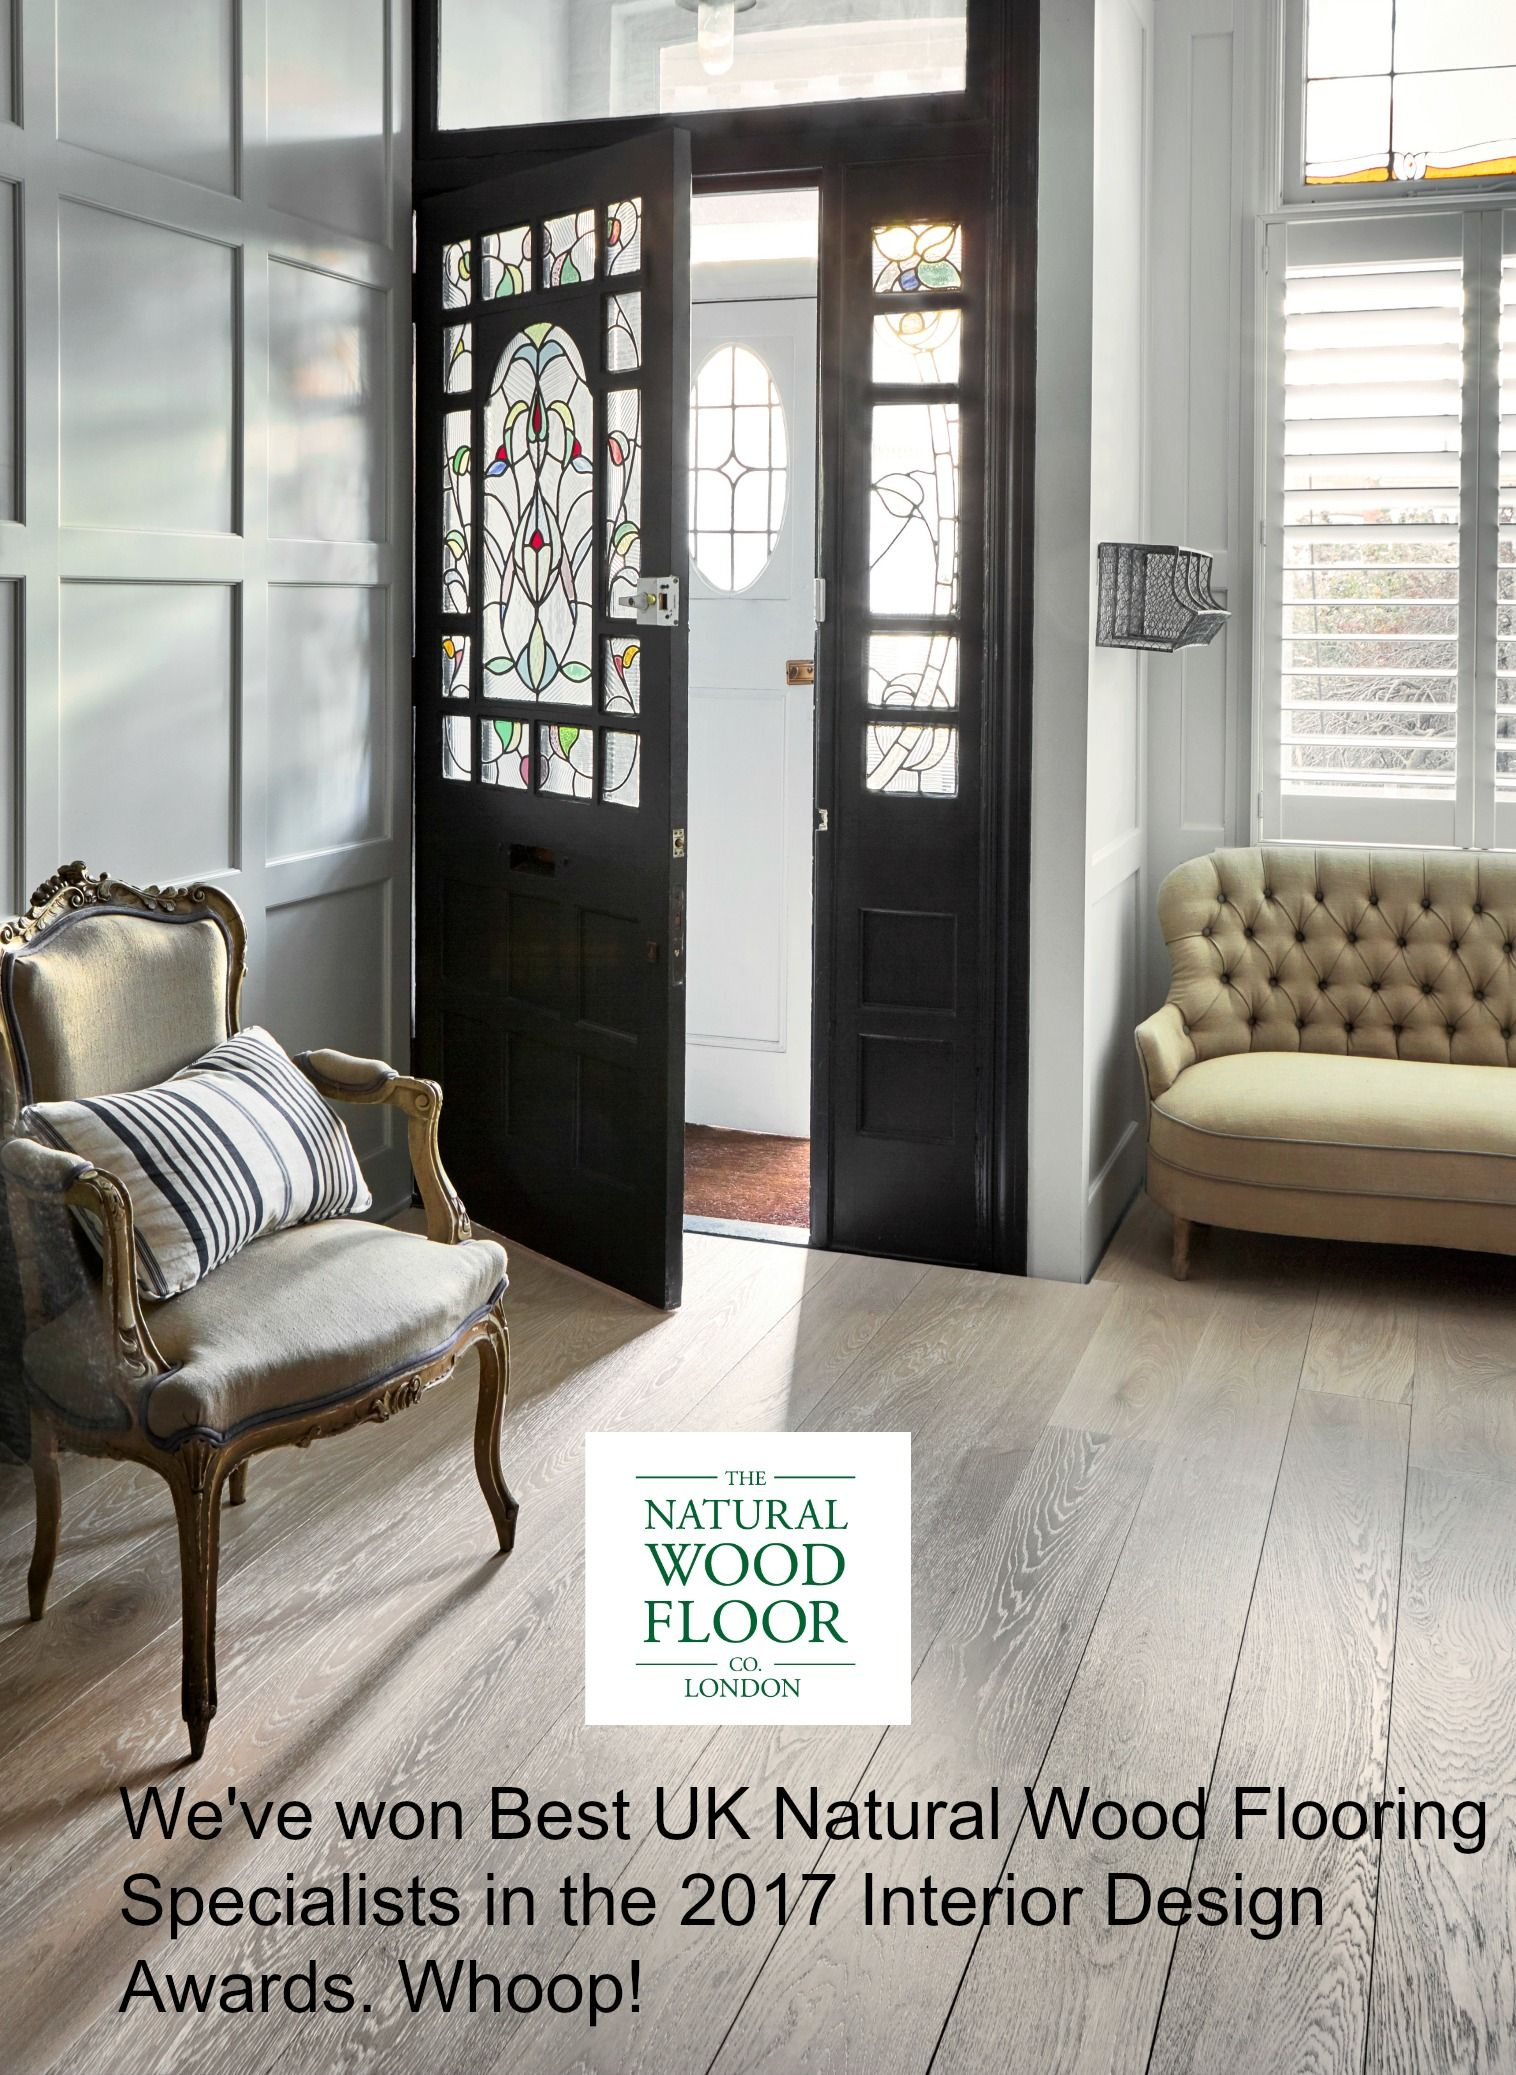 Winner of Best UK Natural Wood Flooring Specialists in the